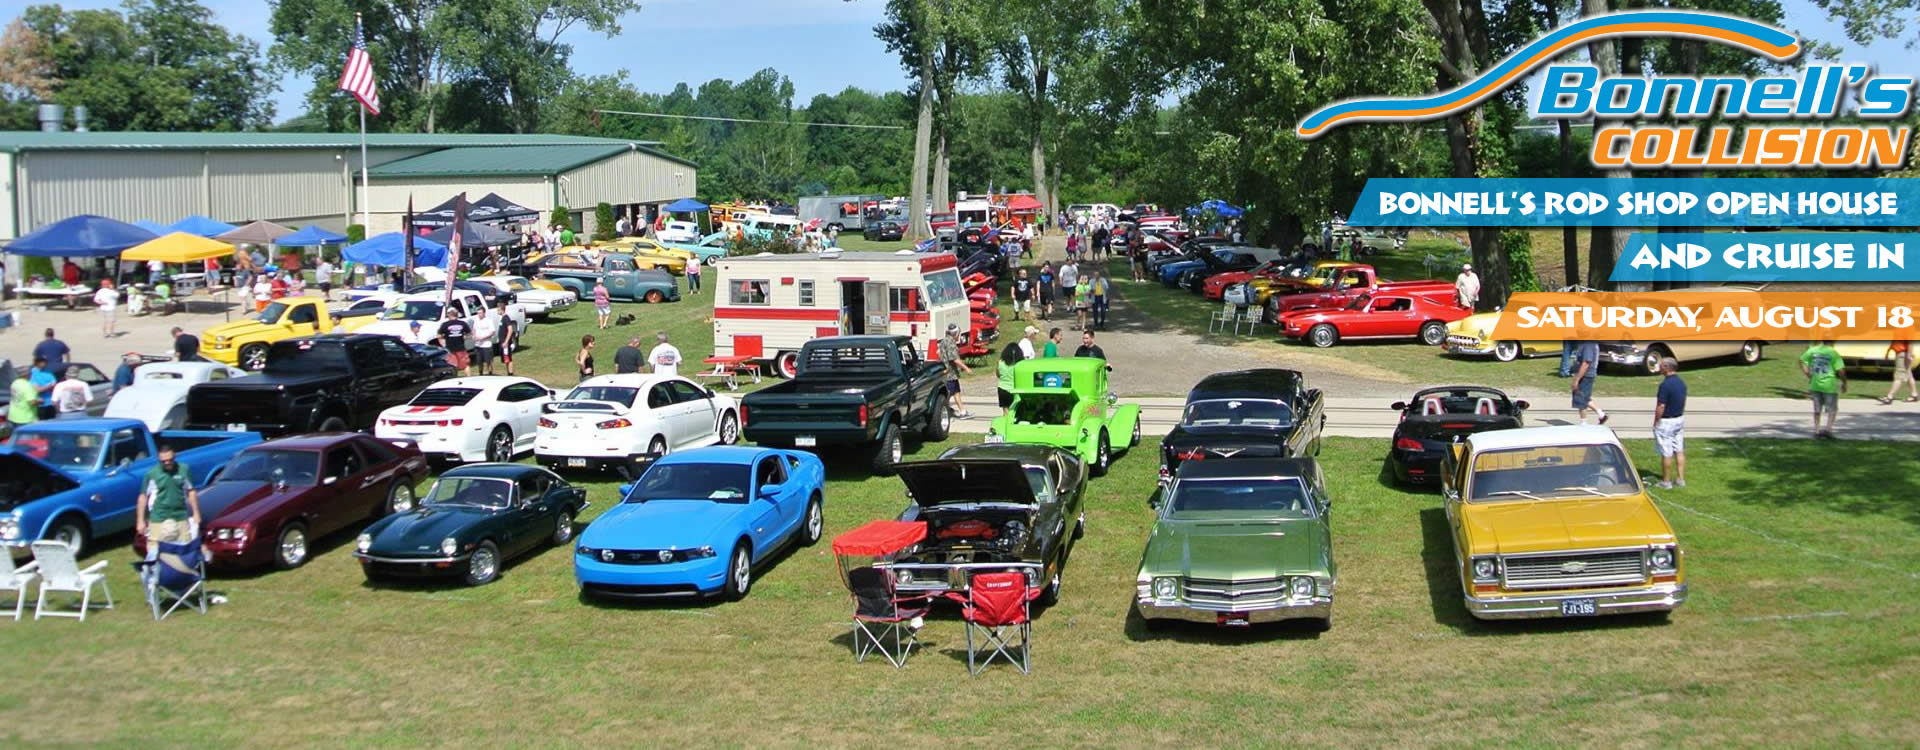 Bonnell\'s Rod Shop Open House and Car Cruise-In – Auto Racers For Kids